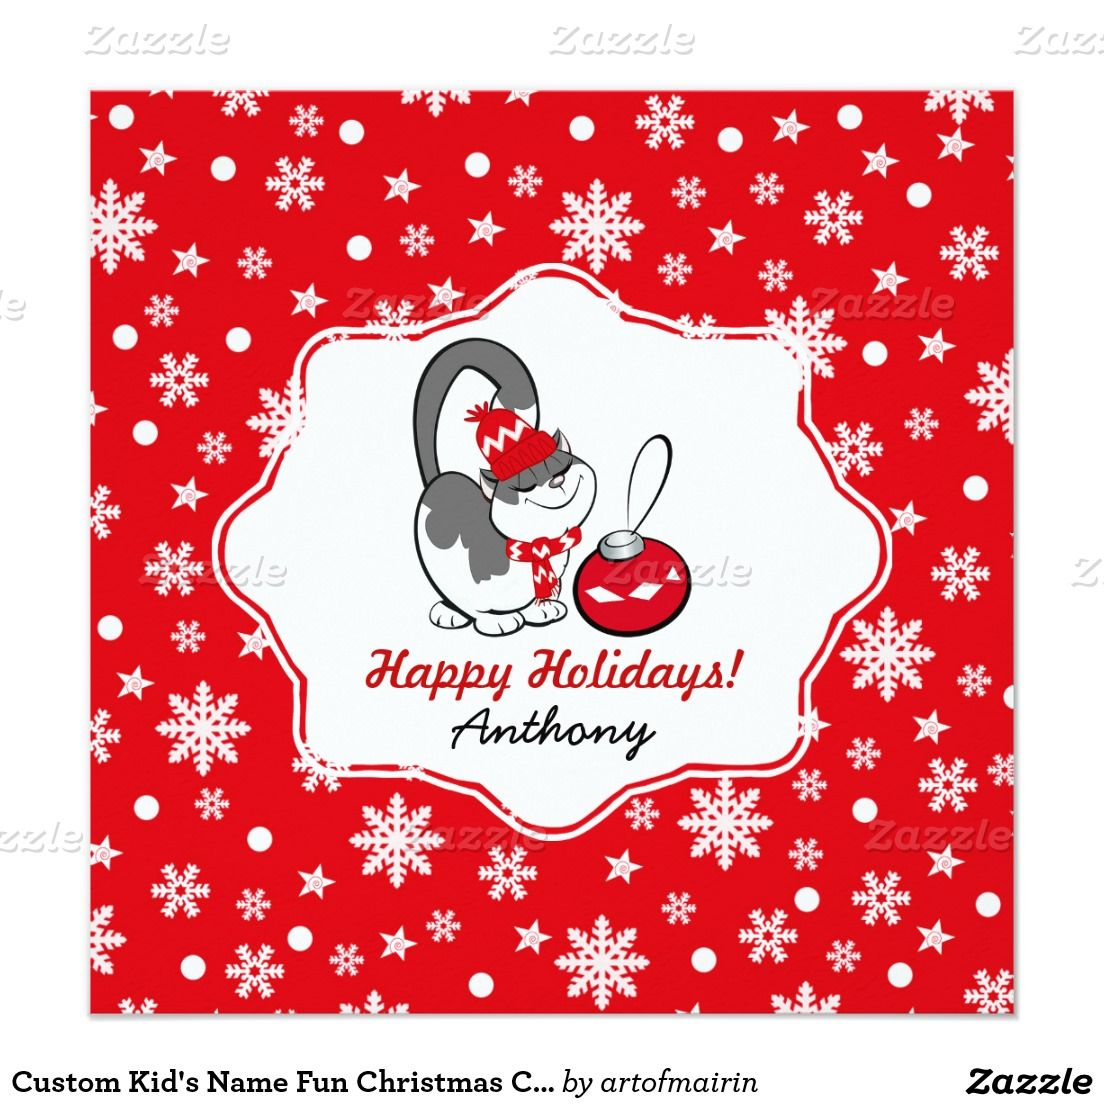 Custom Kids Name Fun Christmas Cards For Kids